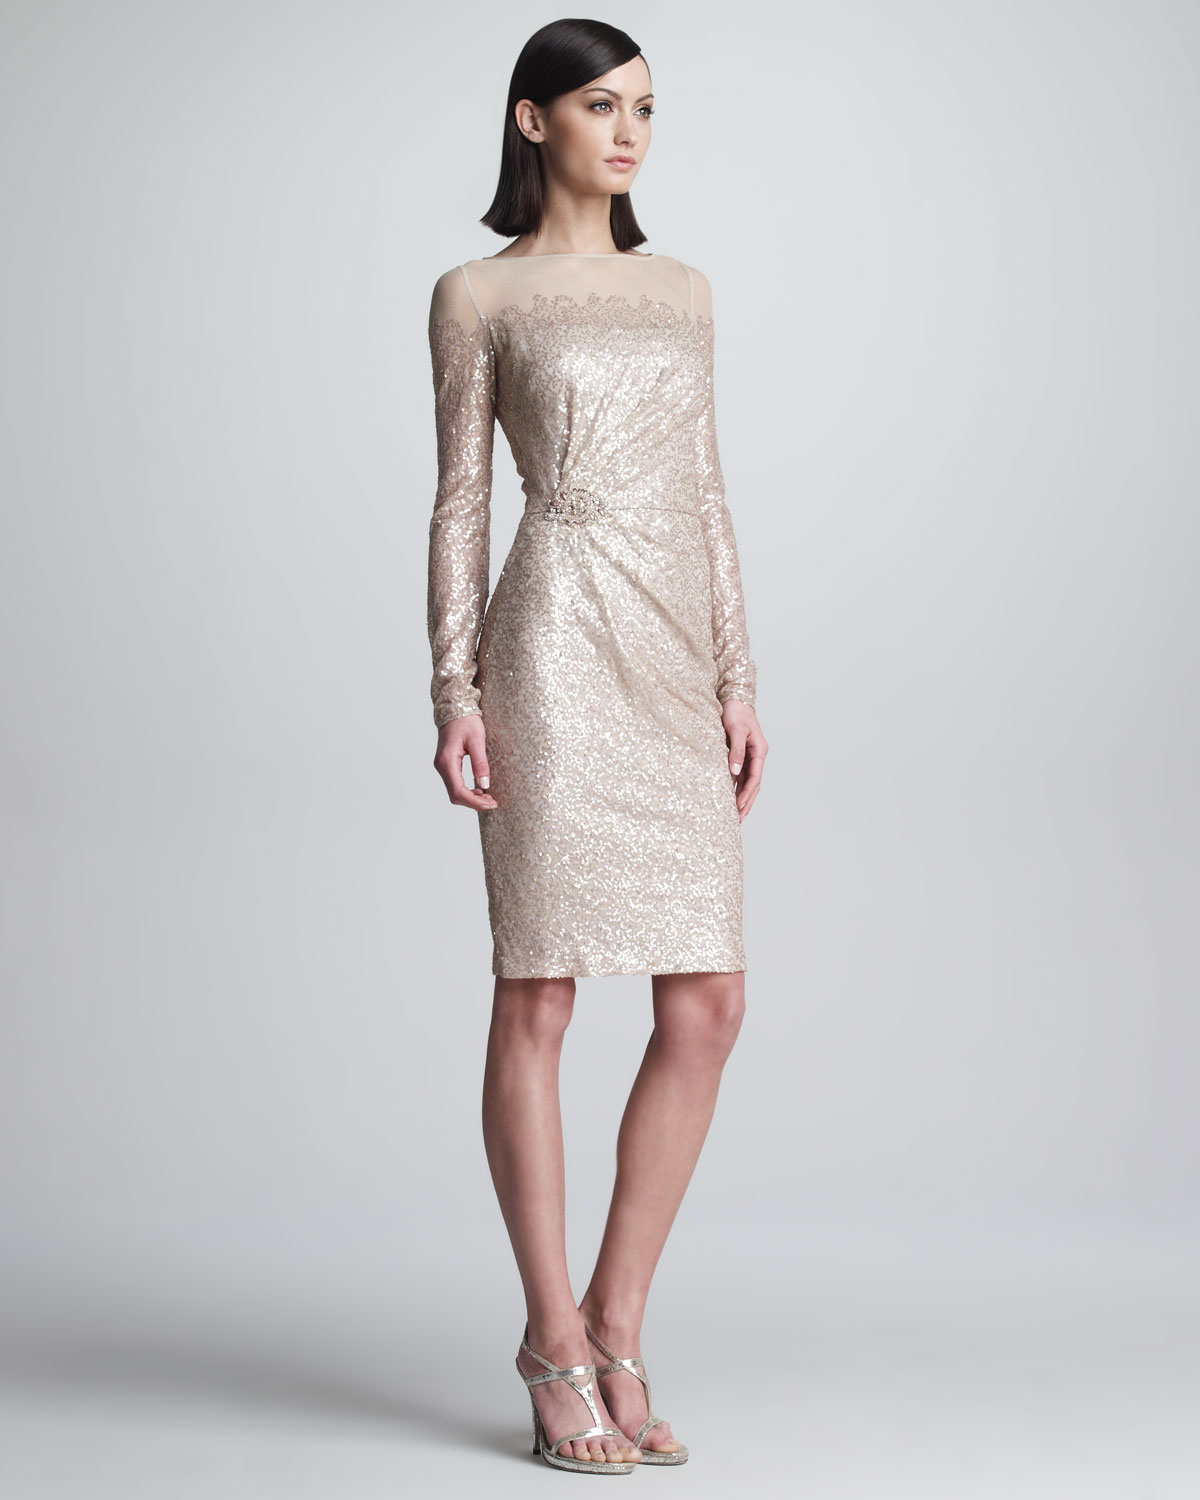 Lyst - David Meister Sequined Longsleeve Cocktail Dress in ...